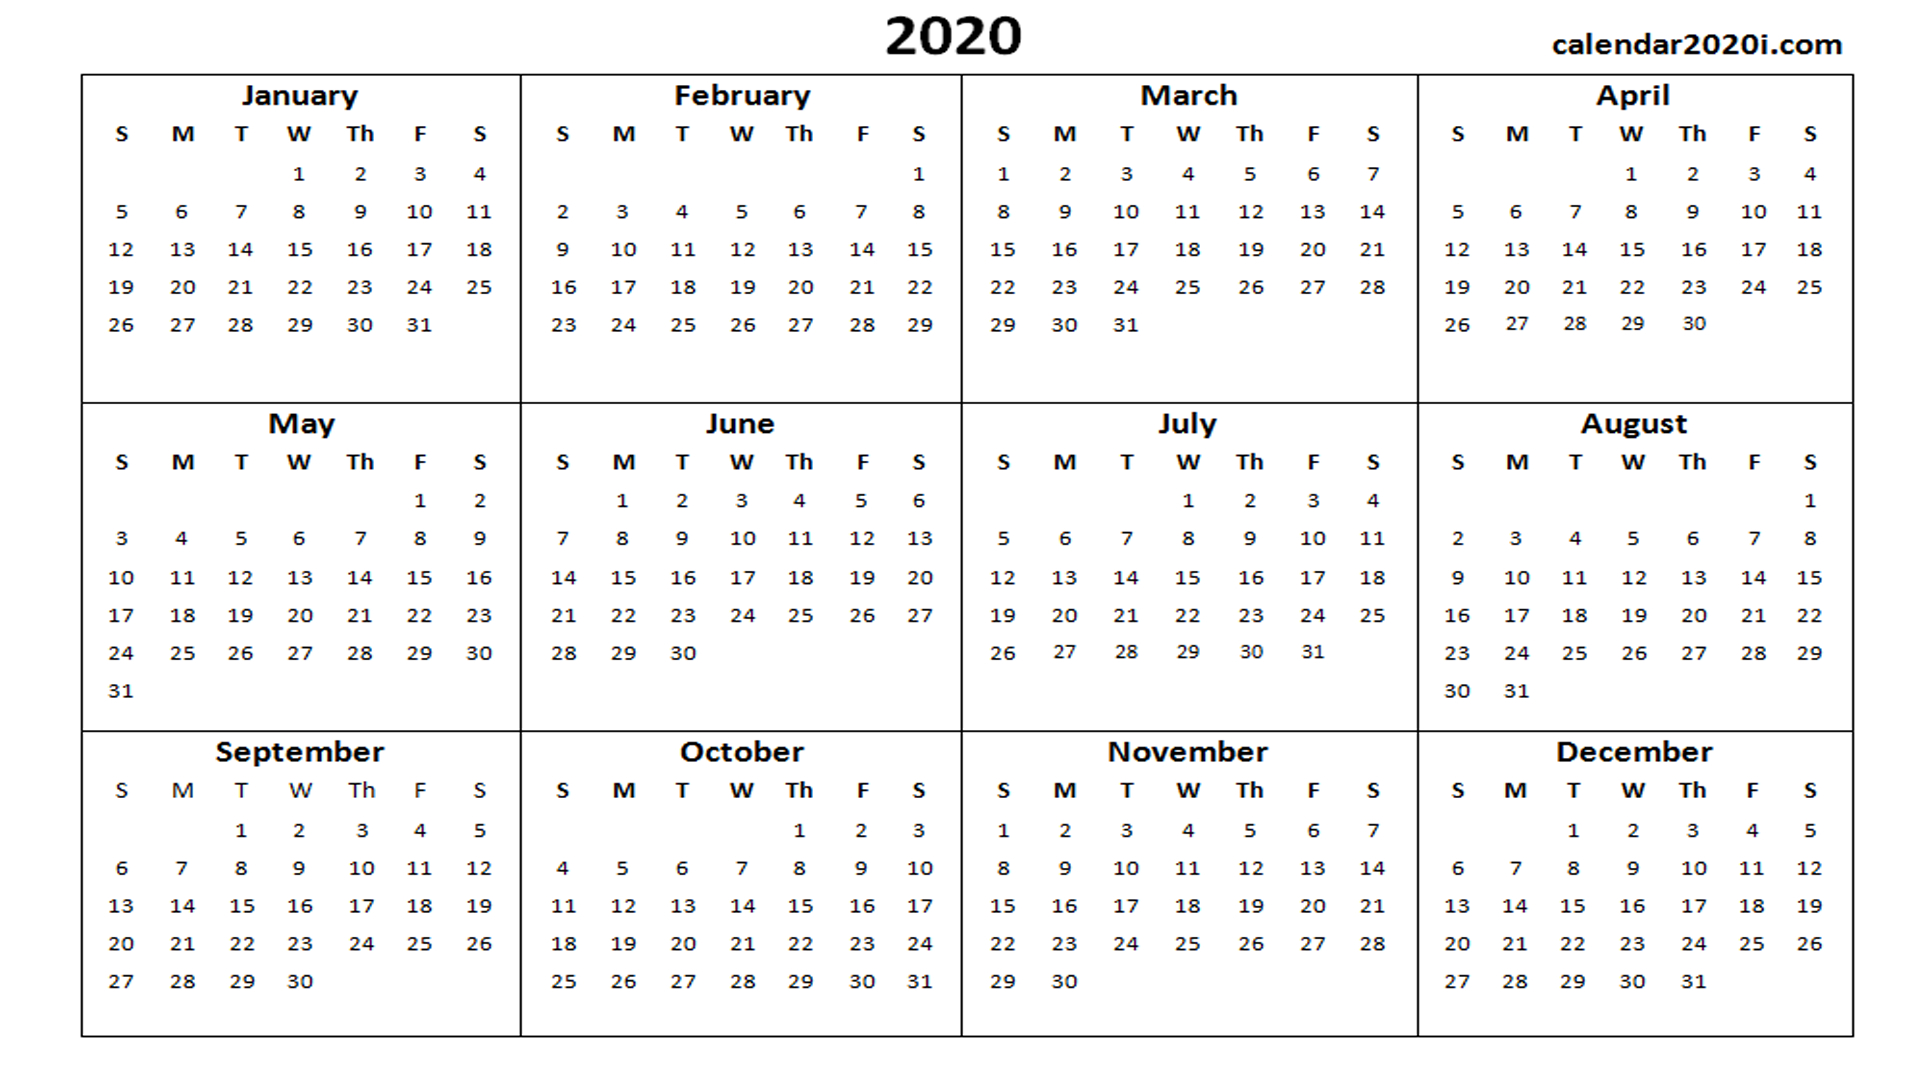 2020 Calendar Printable Template Holidays, Word, Excel, Pdf intended for 2020 Excel Calender